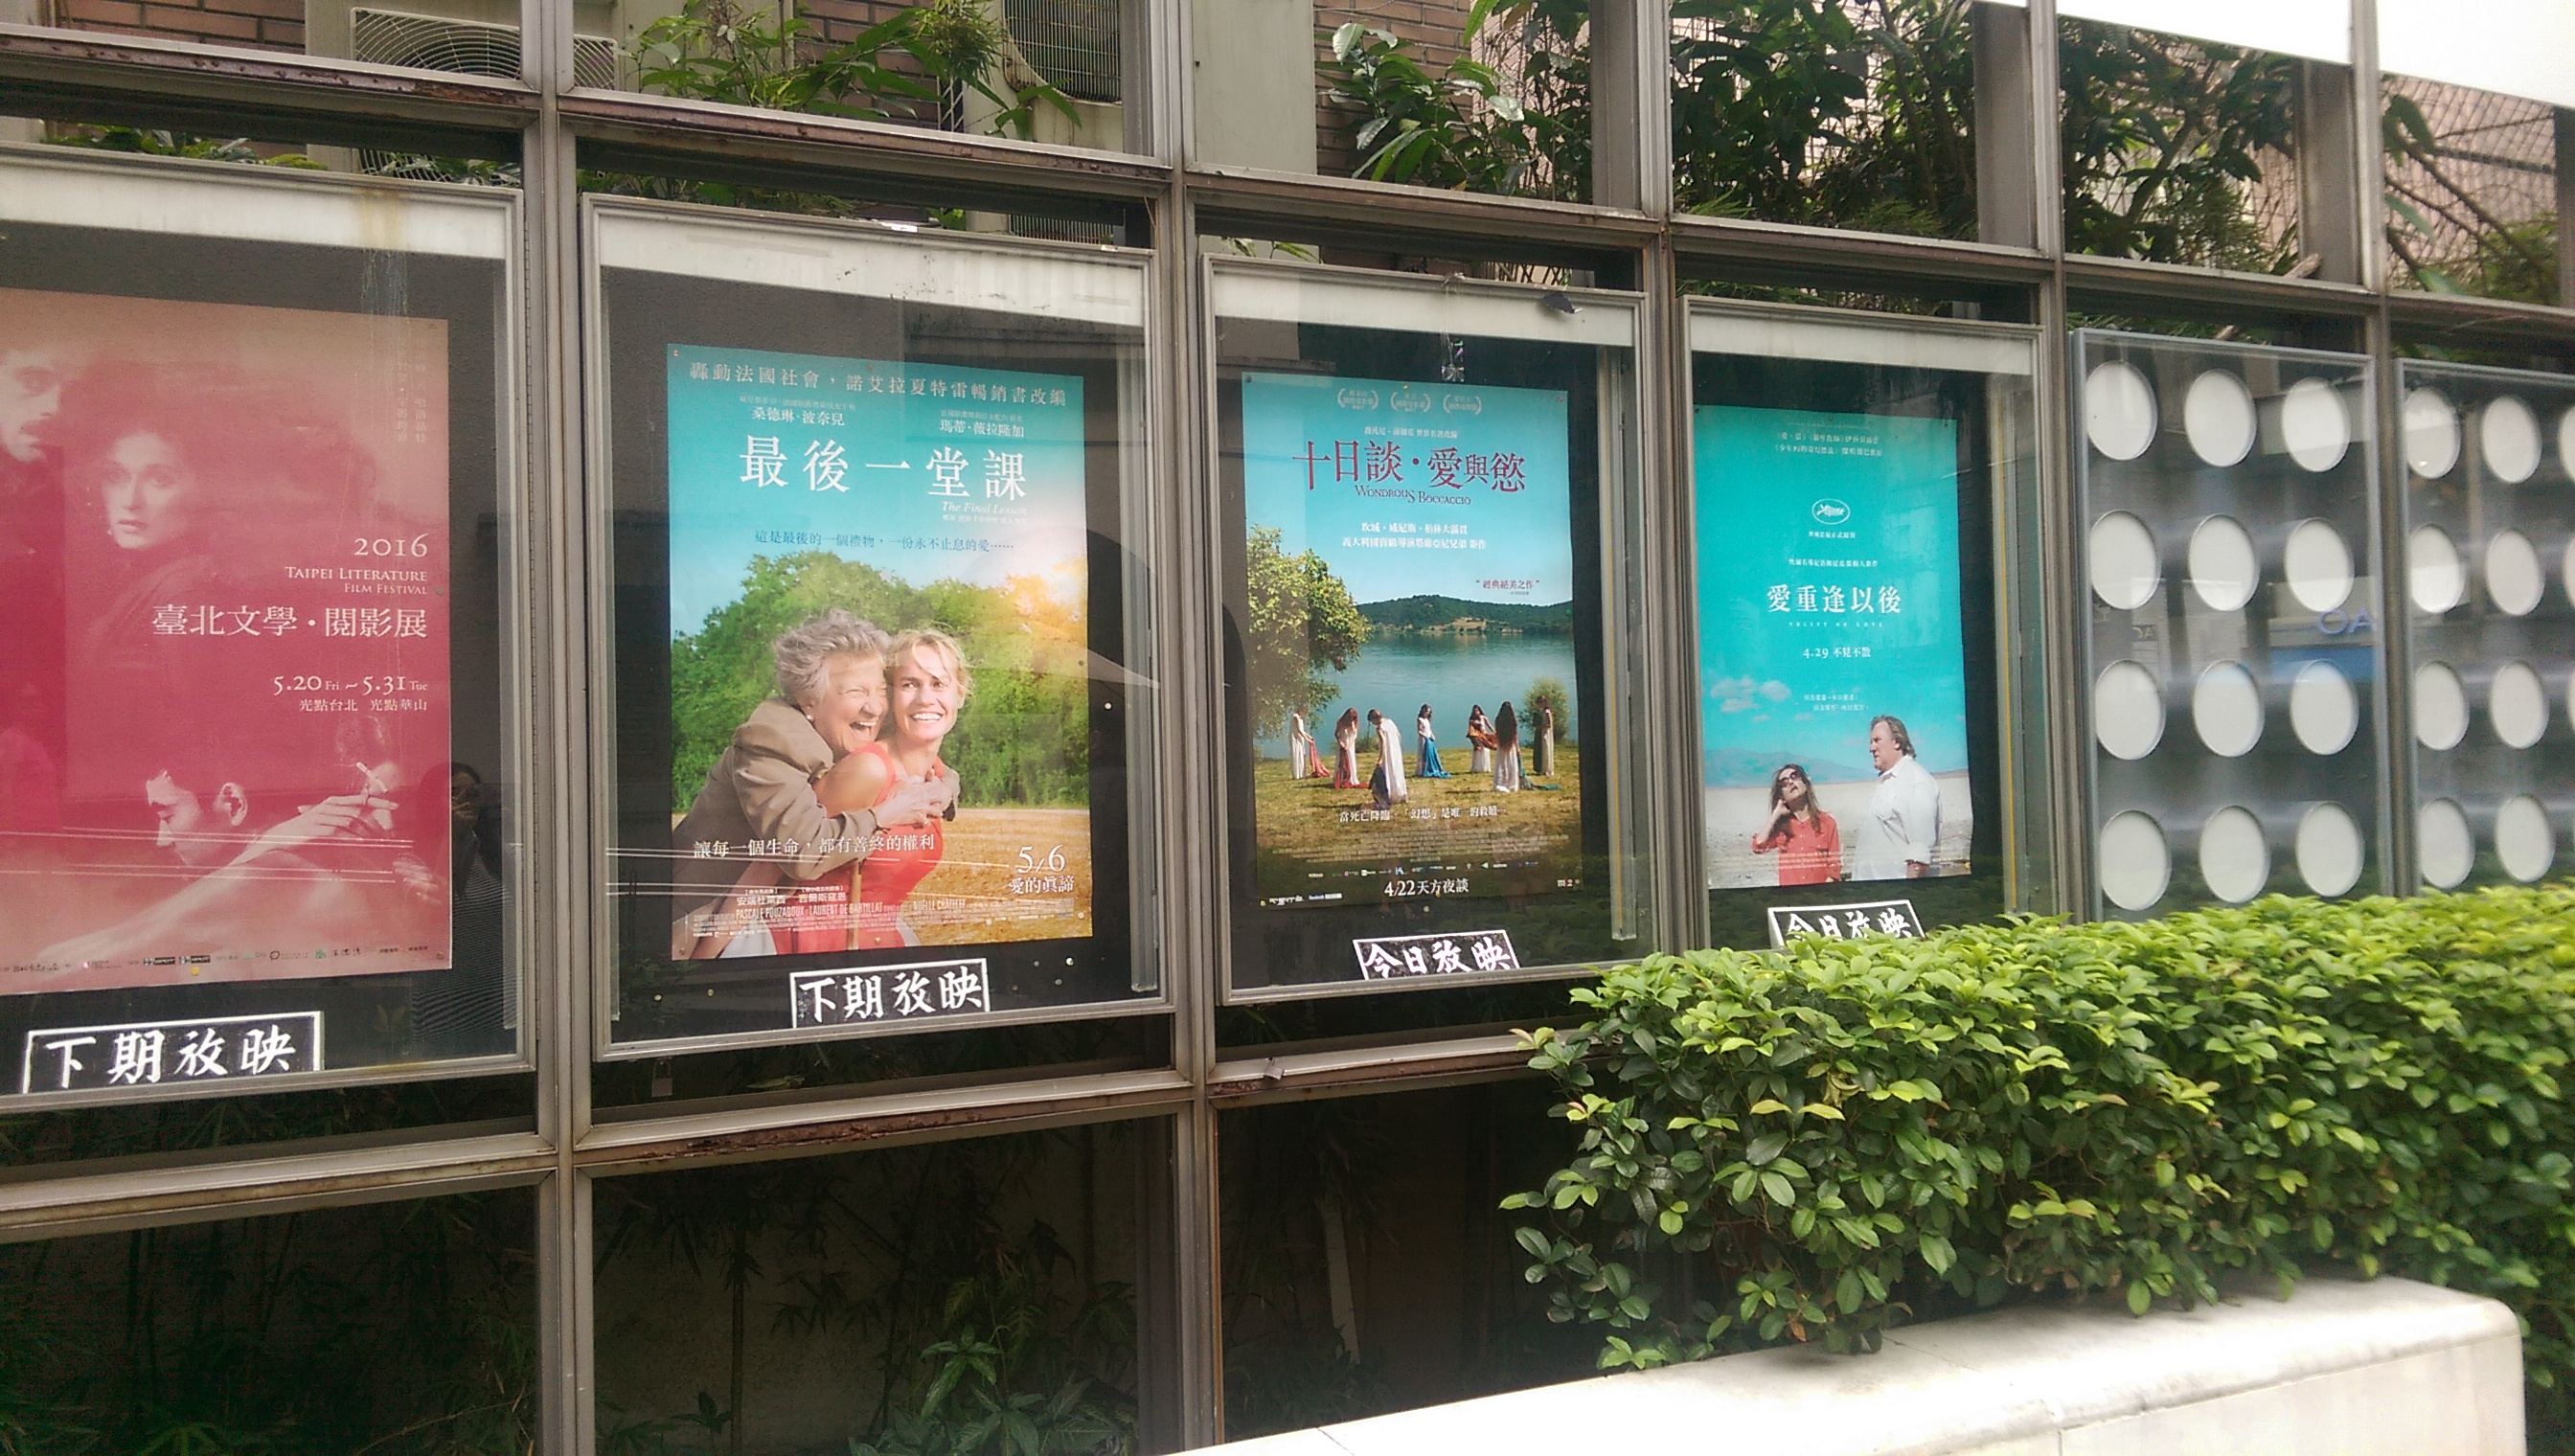 Picture showing movie posters at SPOT cinemas in Taipei